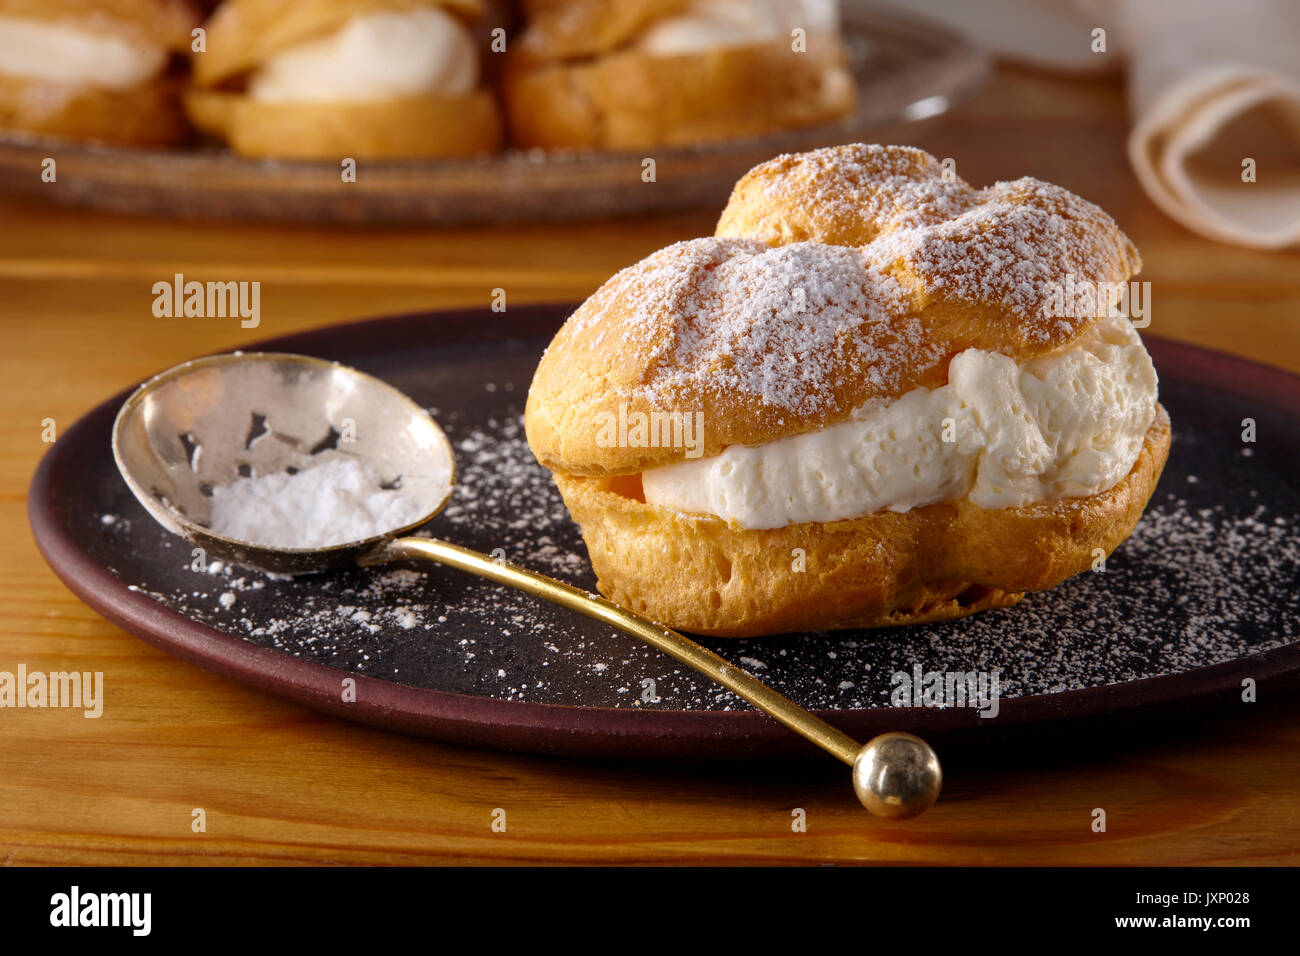 Dairy-free cream puffs - Stock Image